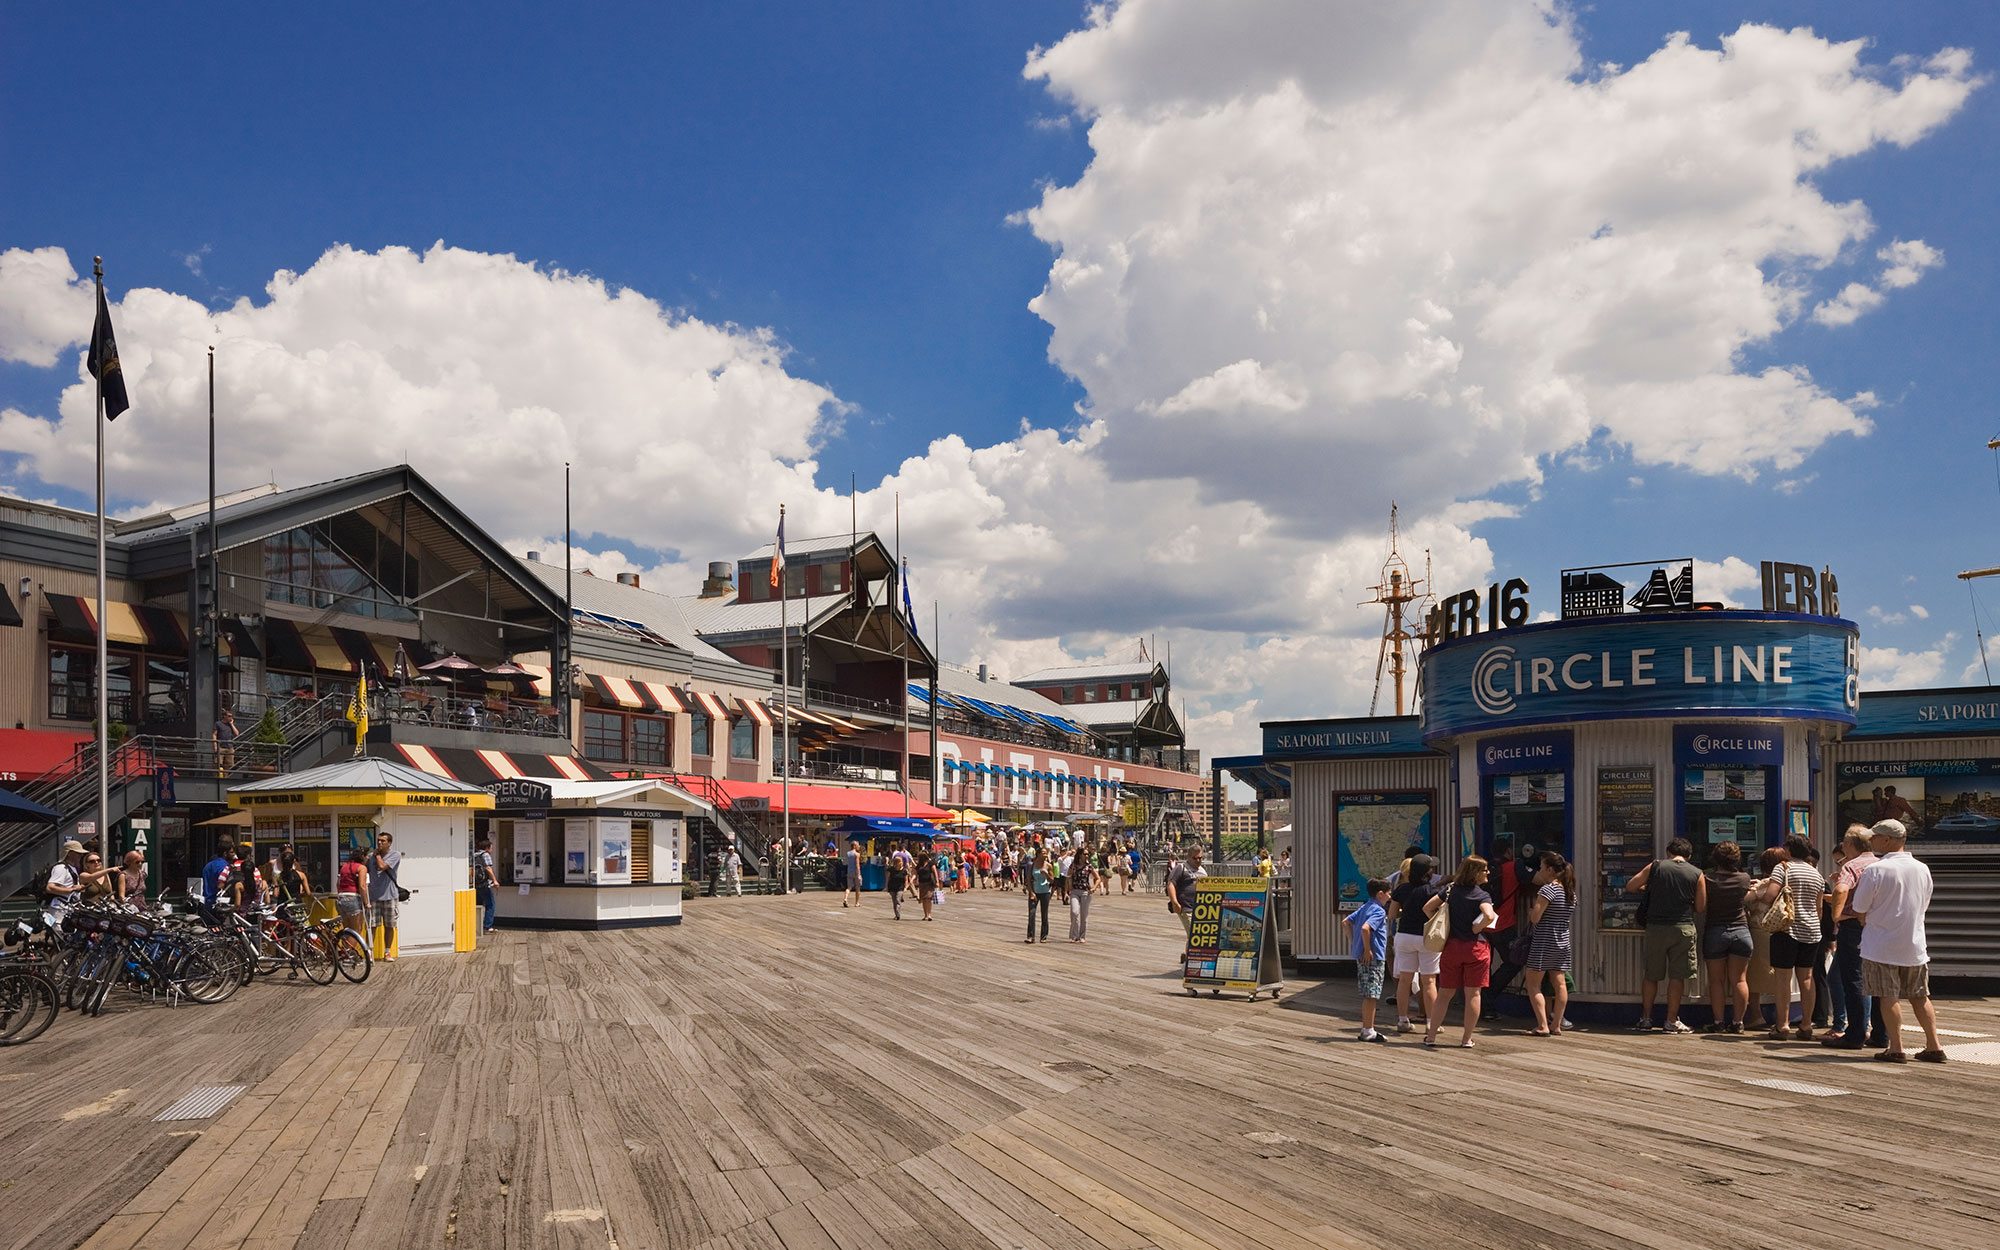 Things to Do in New York's South Street Seaport